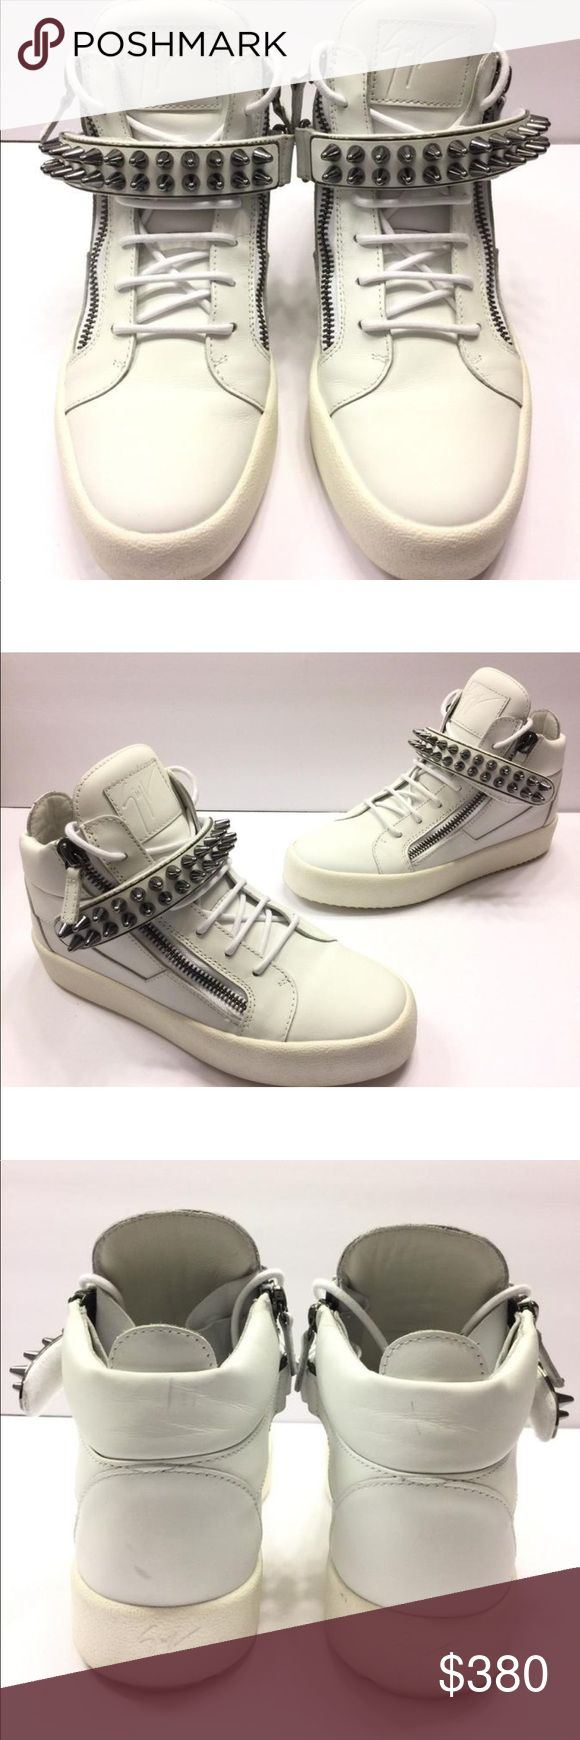 Giuseppe Zanotti Men's Studded Leather Sneaker Giuseppe Zanotti  White 41 EU 8 US -$995.00  Sold as-is no Box or Dust-Bag. Please Check All Pictures. Minor signs of wear, There is a Sku # written on the exterior sole to prevent Store Return. ( see photos for detail )  Details:  Giuseppe Zanotti mid-top sneaker in leather with gunmetal-tone hardware.  Round toe.  Lace-up front.  Dual side zip details.  Spike-studded grip strap.  Logo patch at tongue.  Padded collar with pull tab.  Leather…